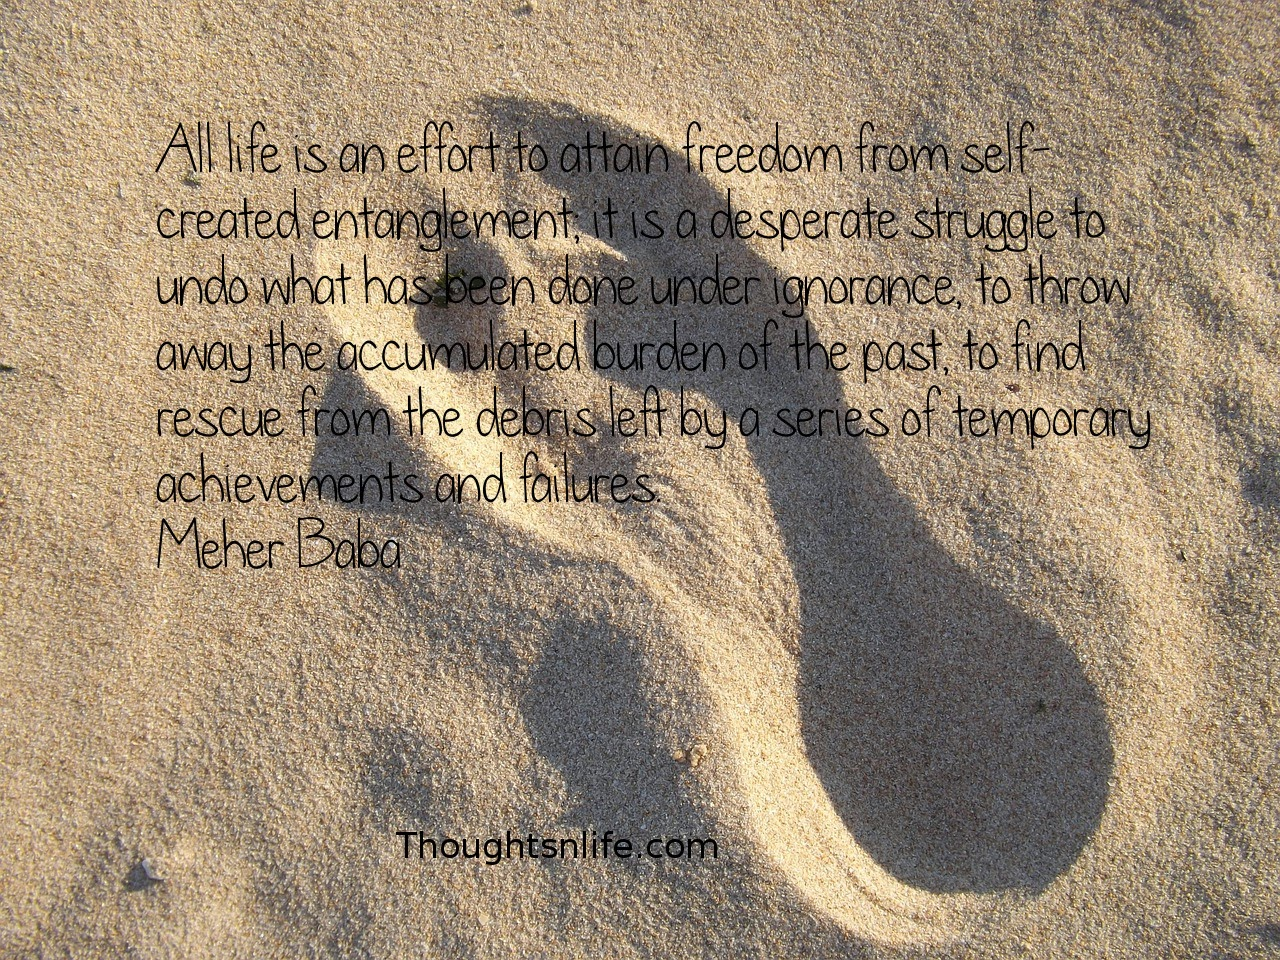 Thoughtsnlife.com: All life is an effort to attain freedom from self-created entanglement; it is a desperate struggle to undo what has been done under ignorance, to throw away the accumulated burden of the past, to find rescue from the debris left by a series of temporary achievements and failures. Meher Baba